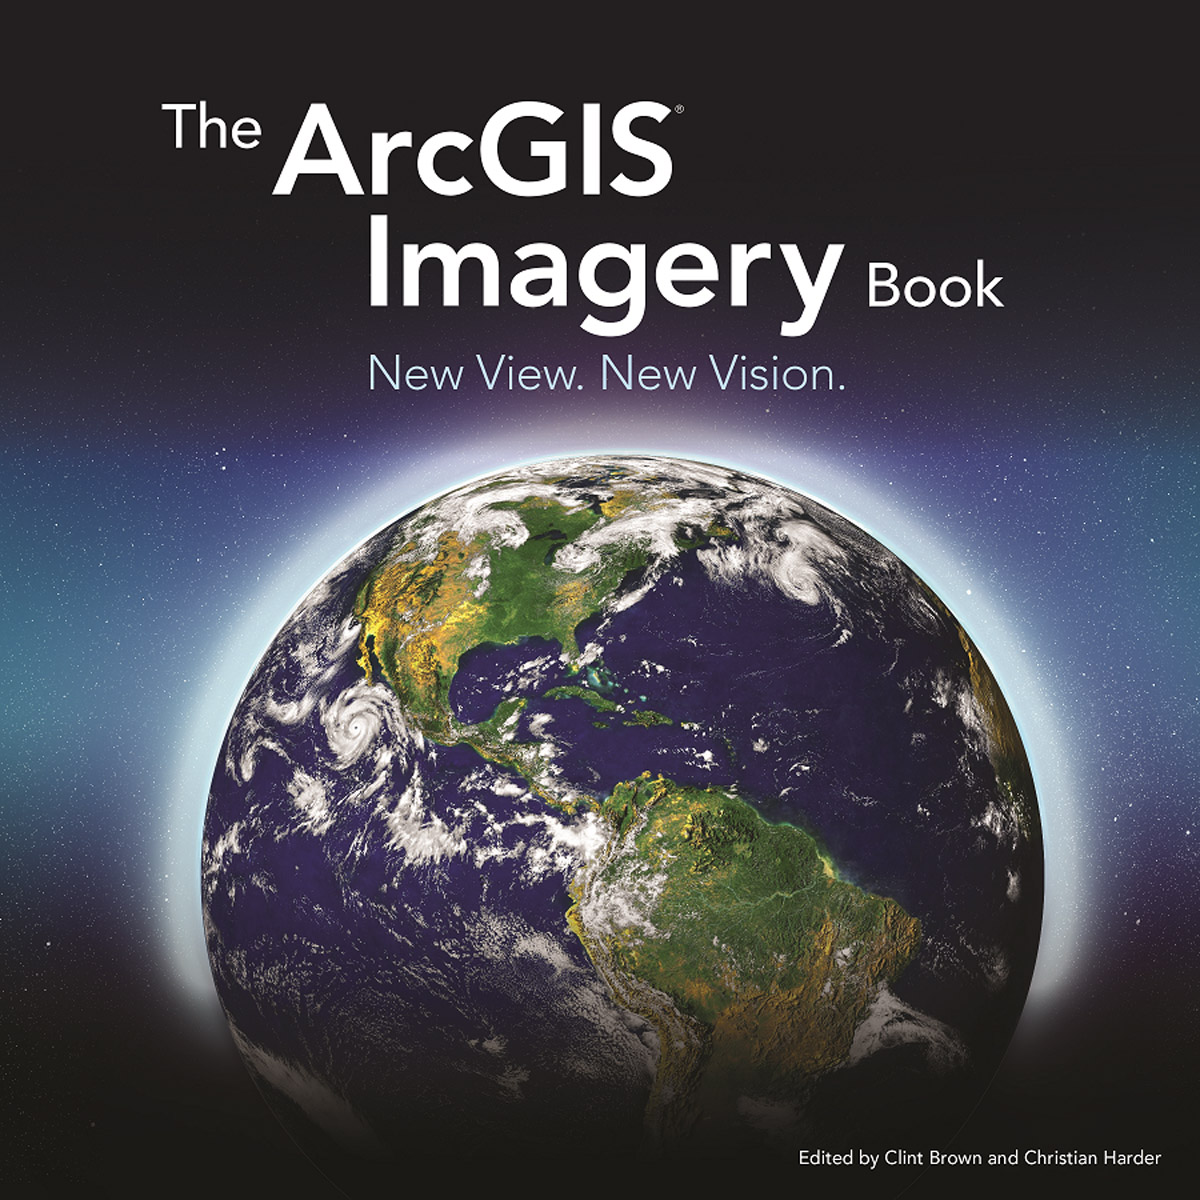 Get more insight into your imagery with ArcGIS.